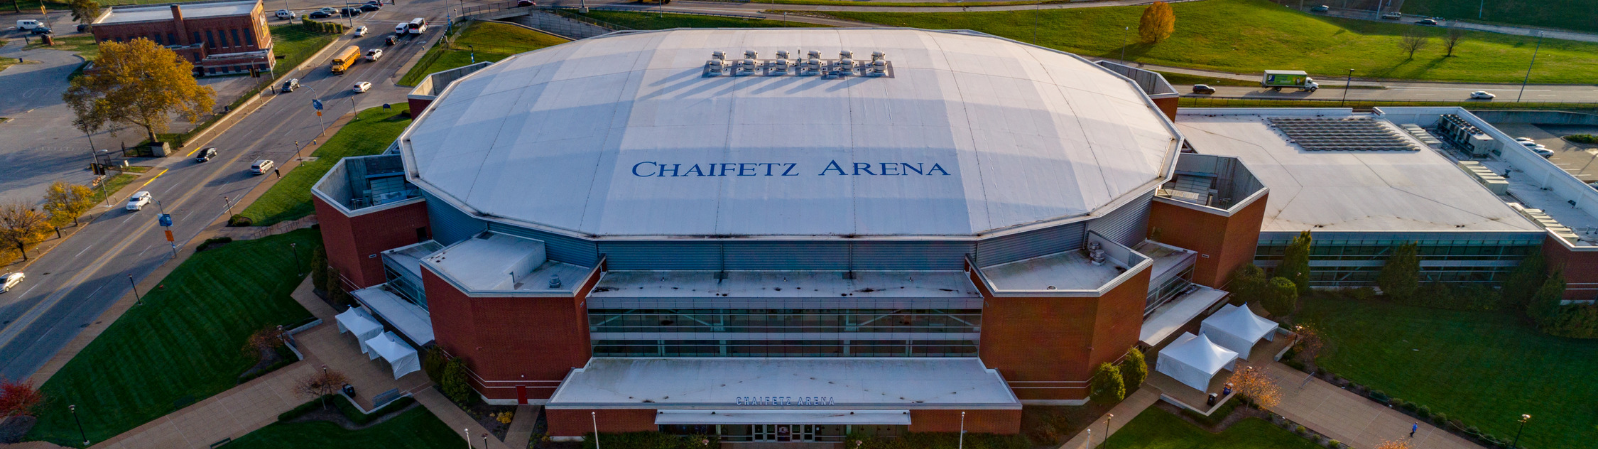 Chaifetz Arena, in St. Louis, MO